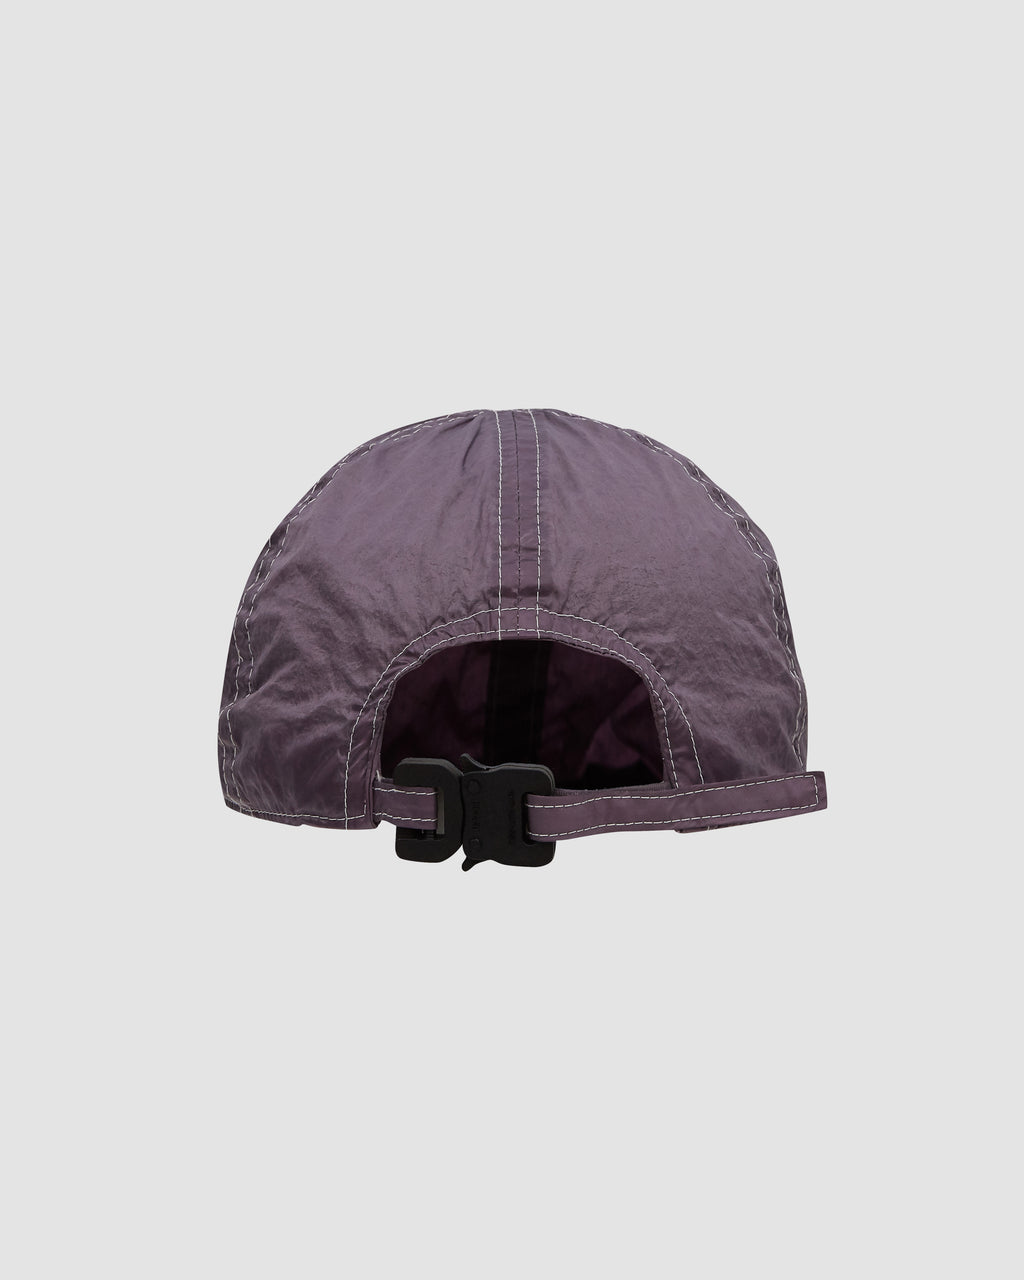 1017 ALYX 9SM | LOGO HAT W NYLON BUCKLE | Hat | Accessories, Google Shopping, Hat, HATS, Man, PURPLE, S20, S20 Drop II, UNISEX, Woman